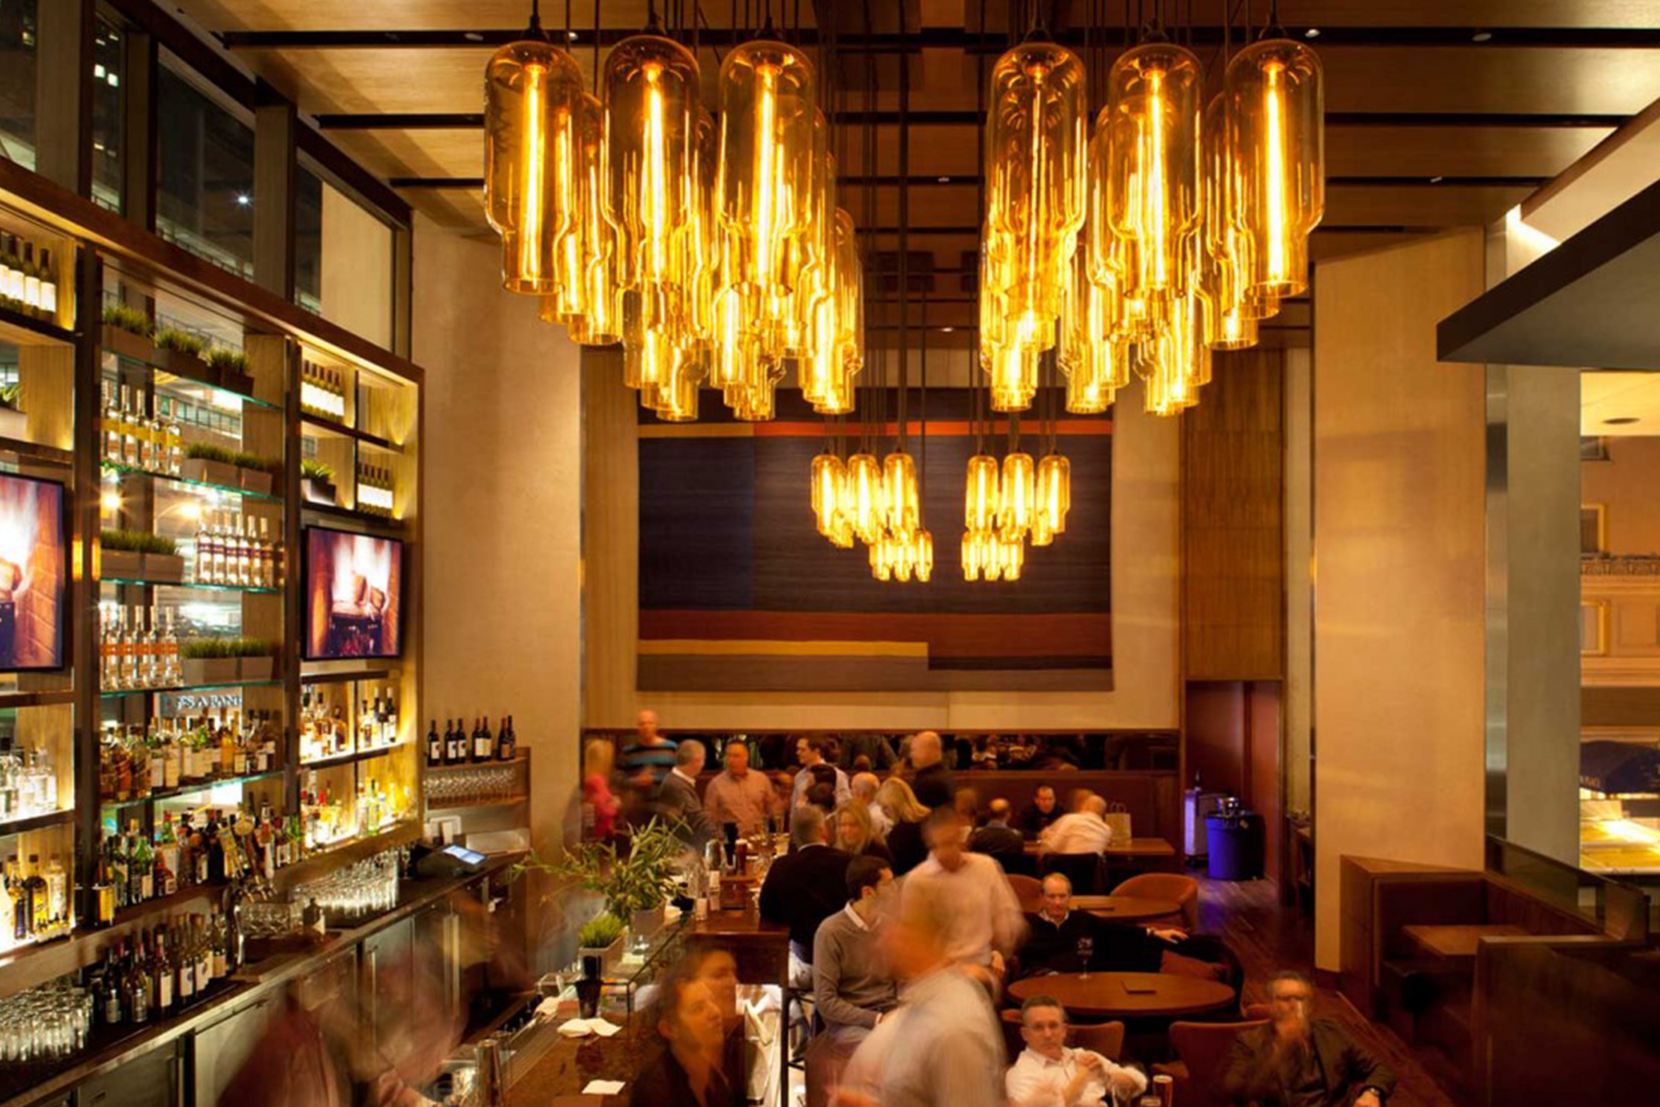 Modern-Hotel-Bar-Pendant-Lighting-Grand-Hyatt-One-Up-Lounge.png